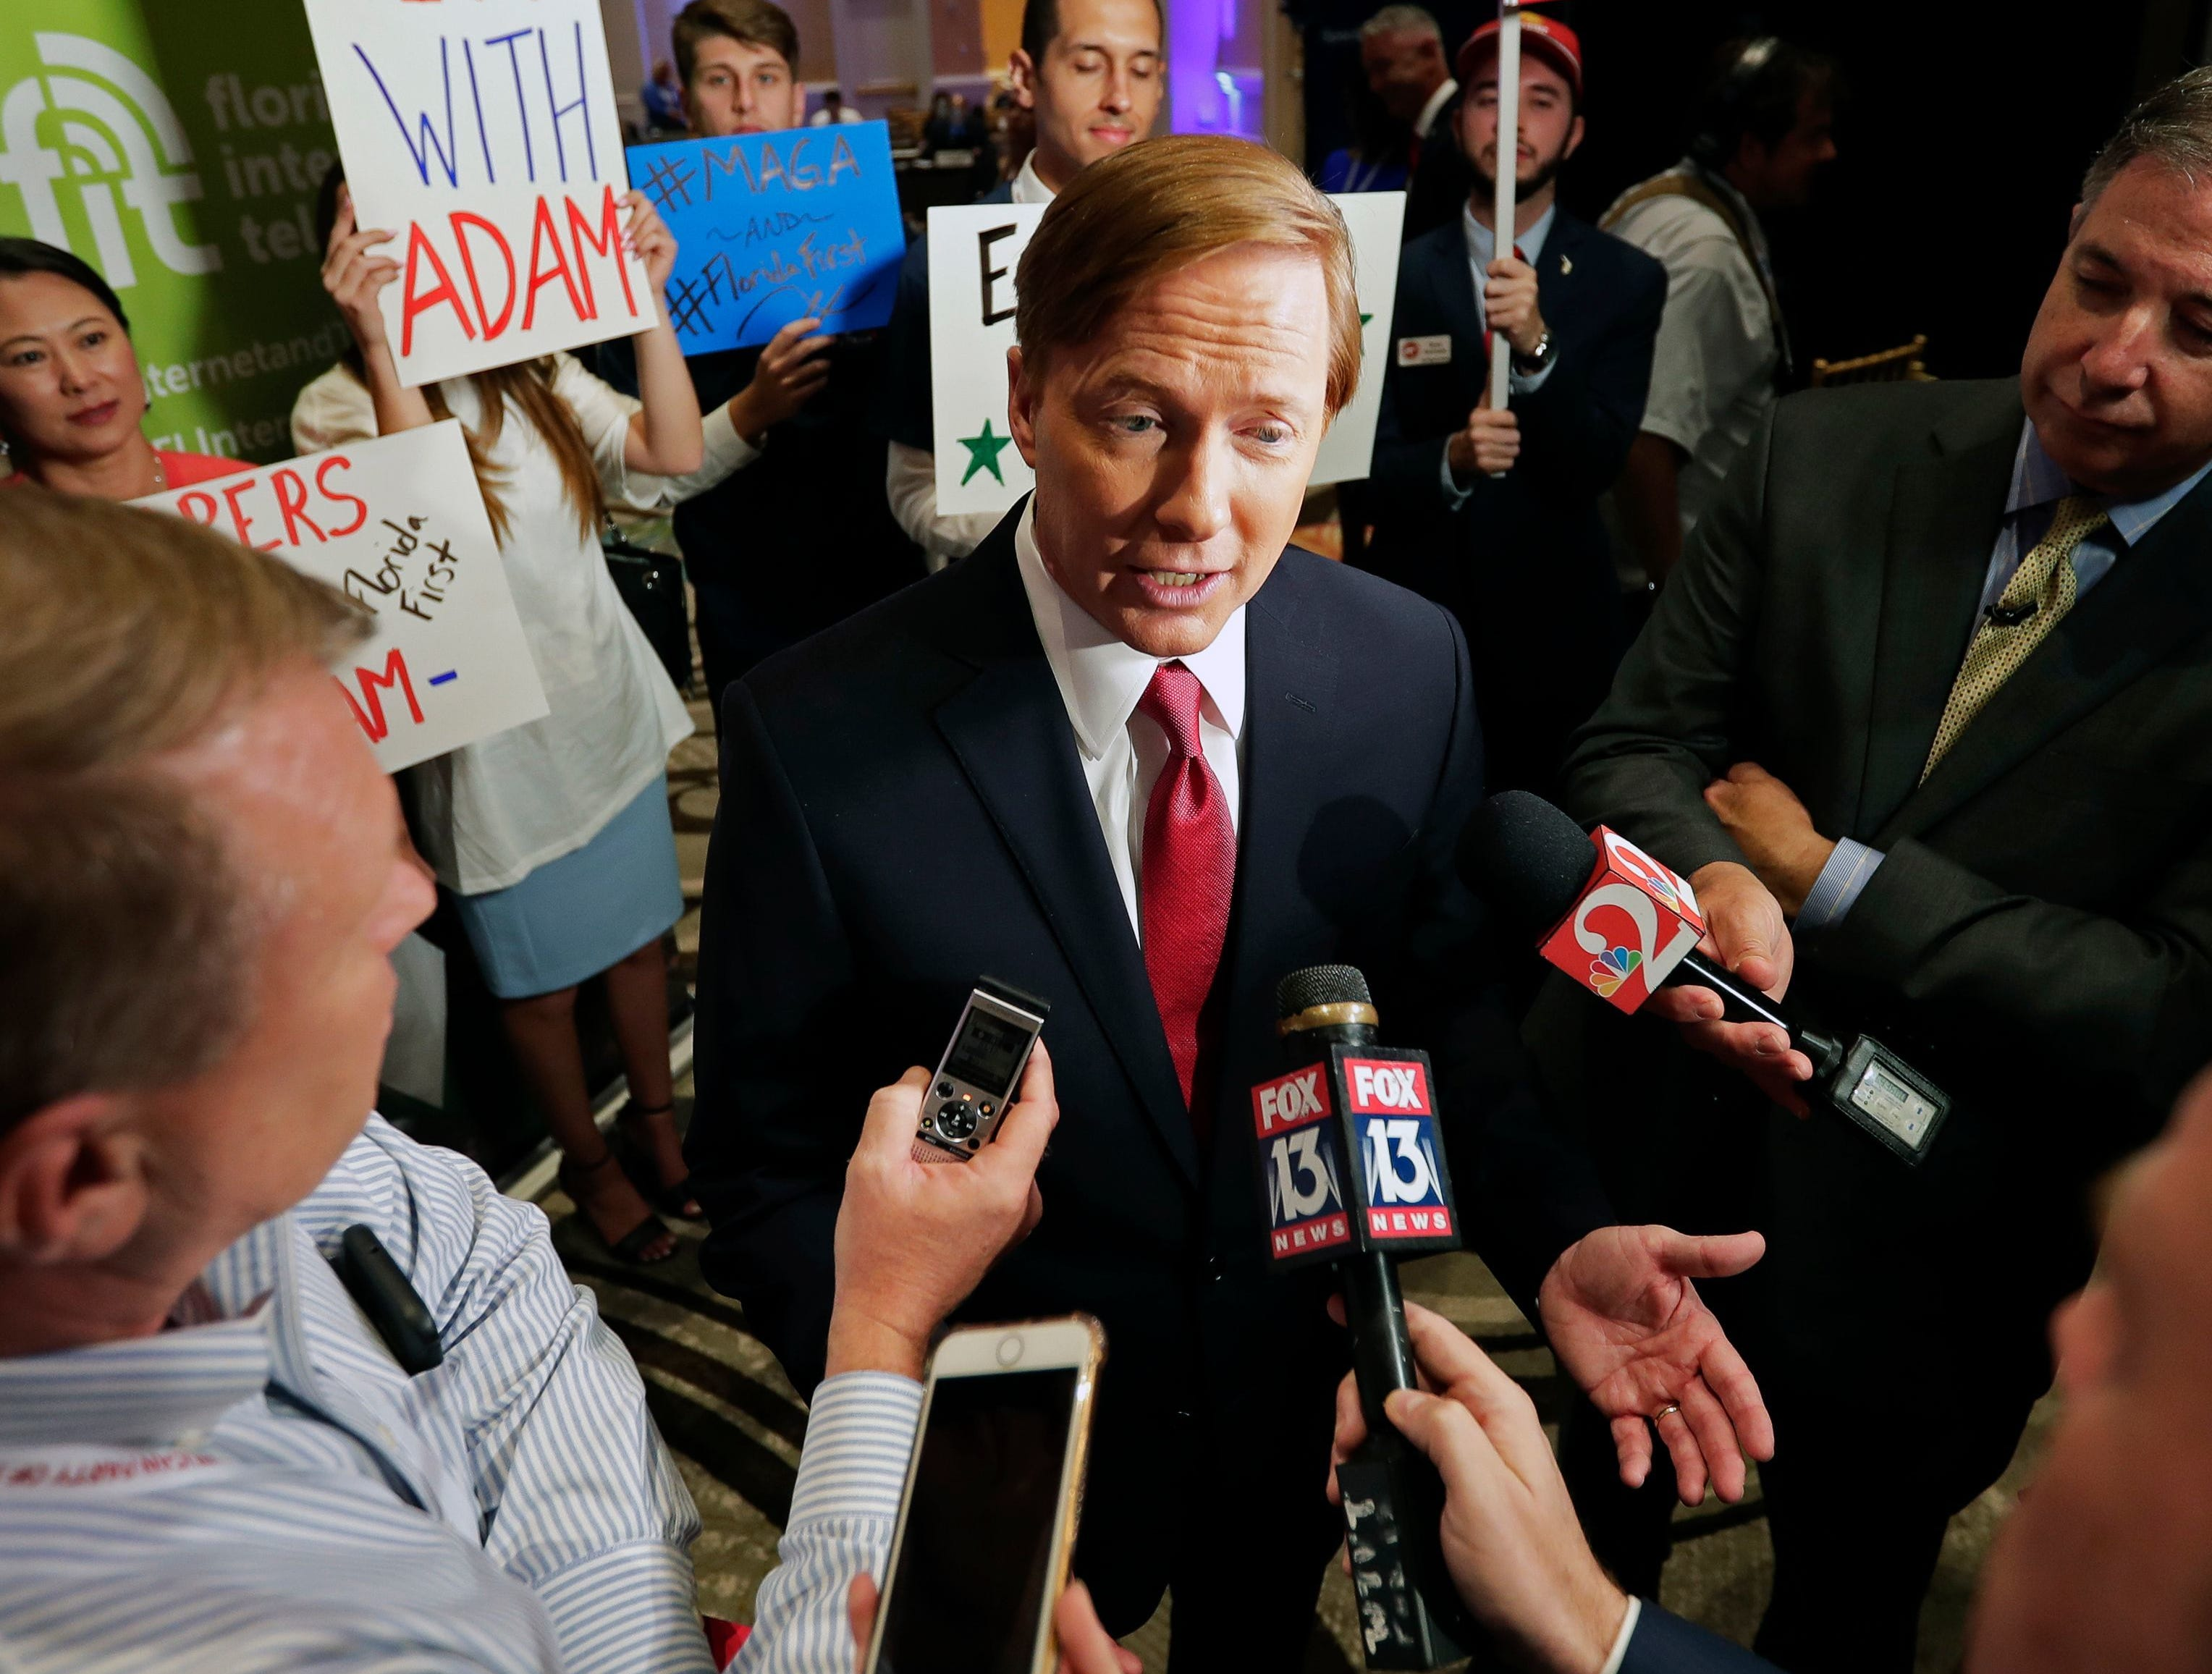 June 28, 2018 - Agriculture Commissioner Adam Putnam, center, meets with members of the media after a  Republican gubernatorial primary debate at the Republican Sunshine Summit in Kissimmee.